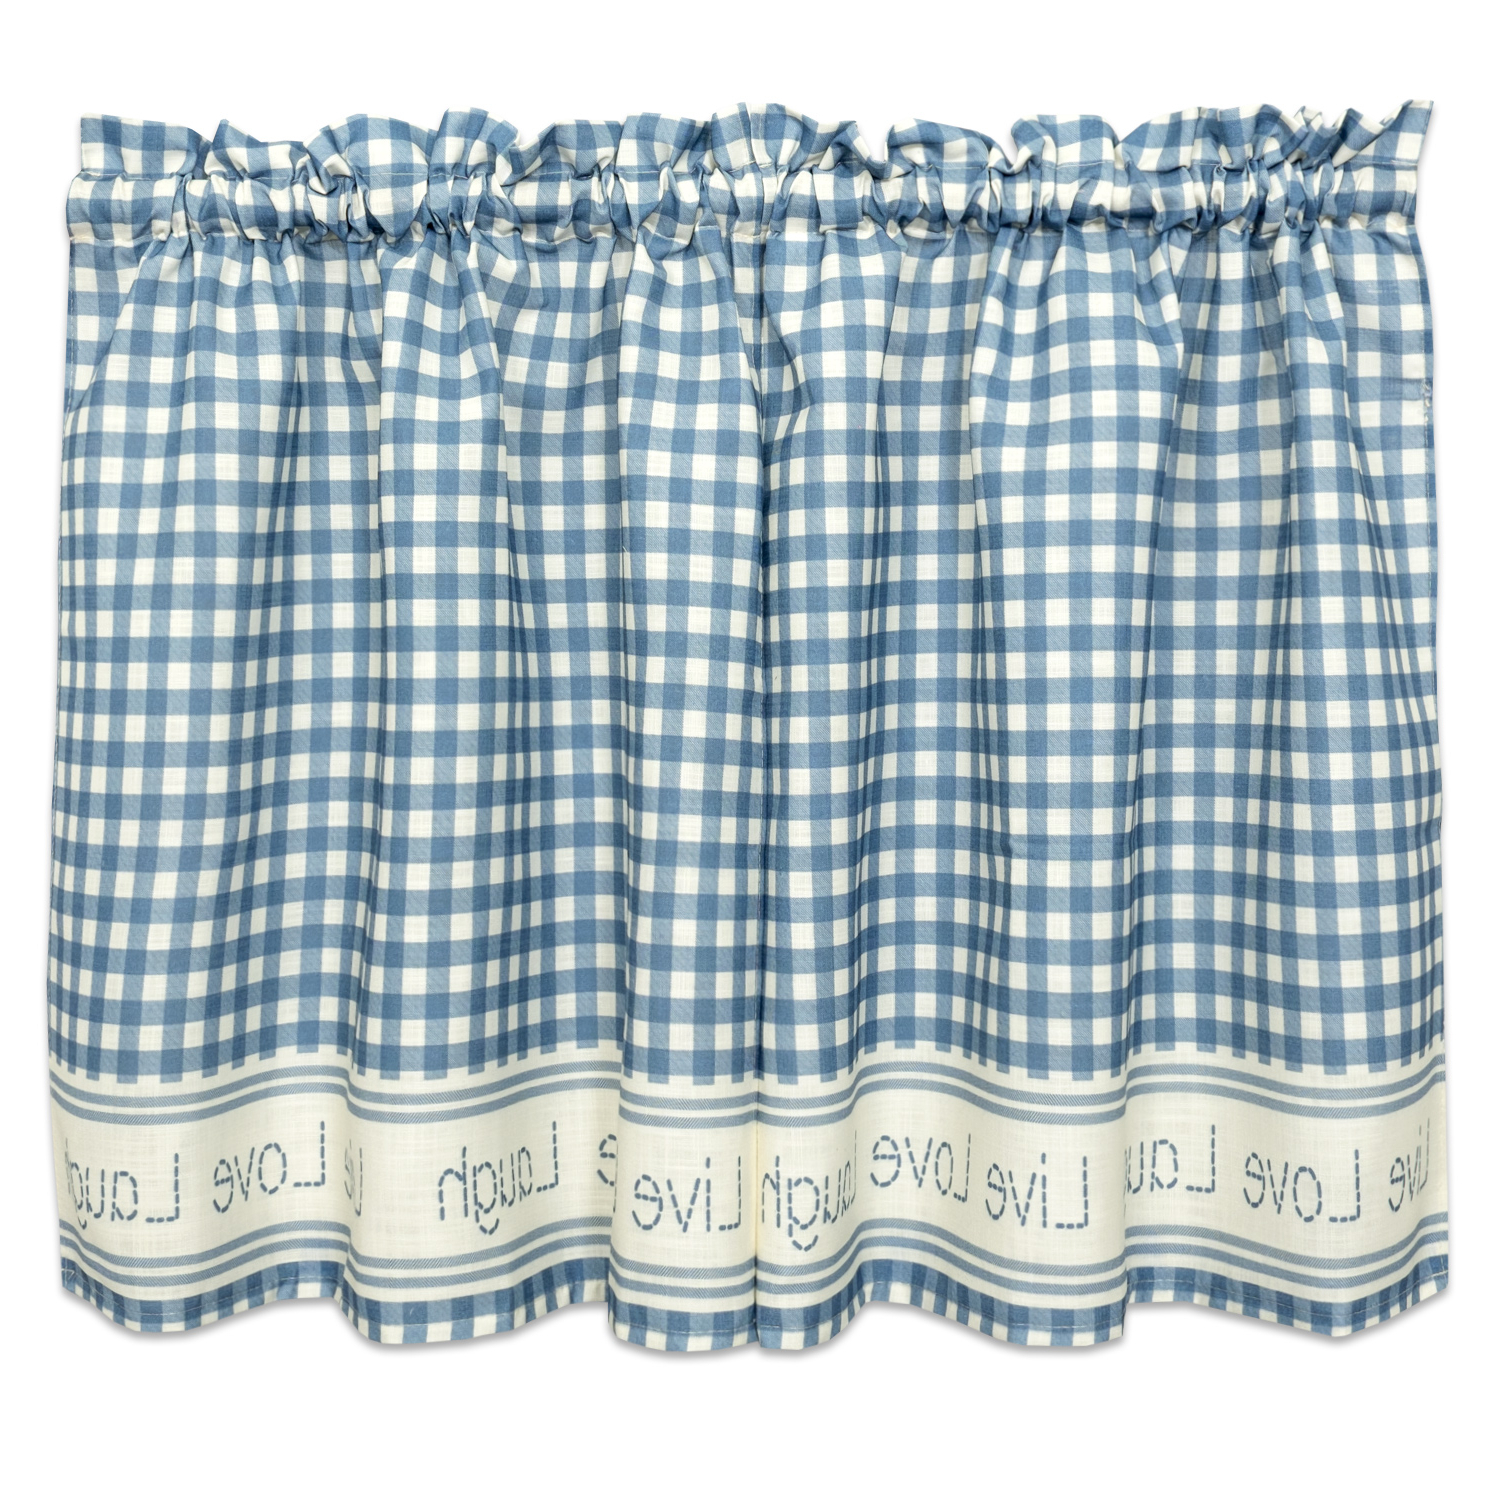 Gingham Stitch Live Laugh Love Kitchen Curtain Tier Pair Or Valance Blue Pertaining To Most Recently Released Live, Love, Laugh Window Curtain Tier Pair And Valance Sets (View 12 of 20)